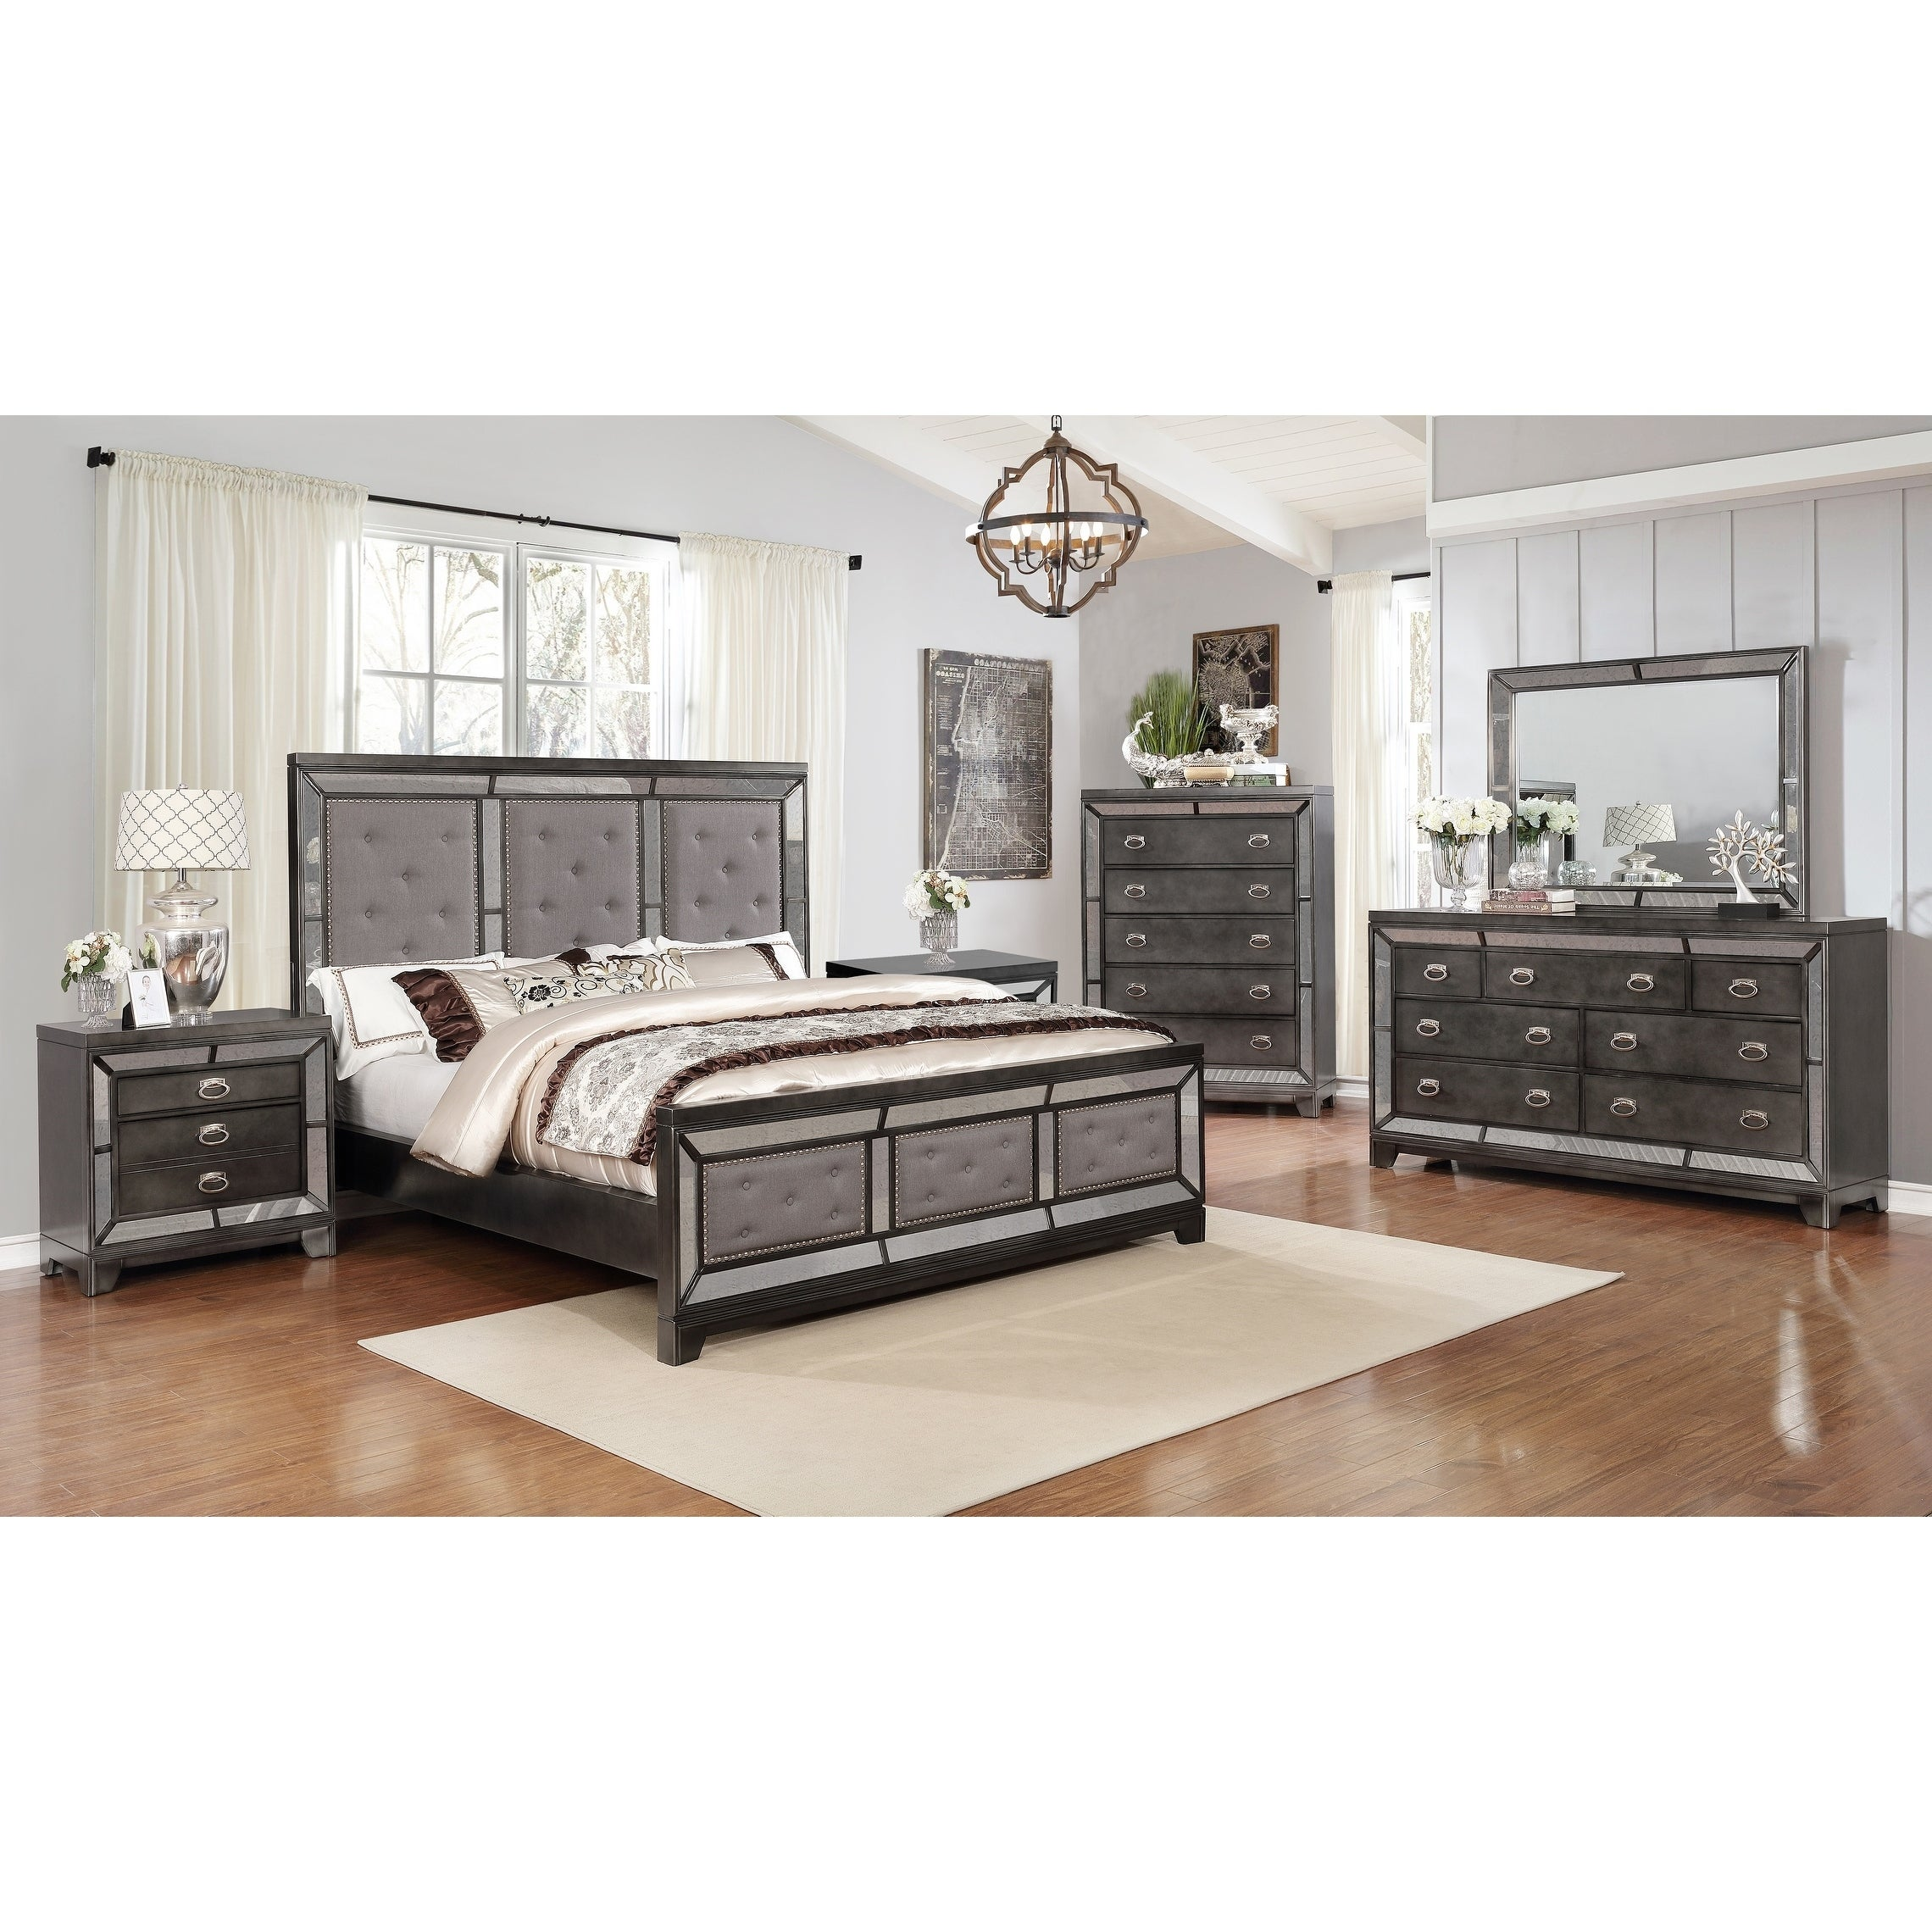 Best Quality Furniture Victoria 6-Piece Bedroom Set